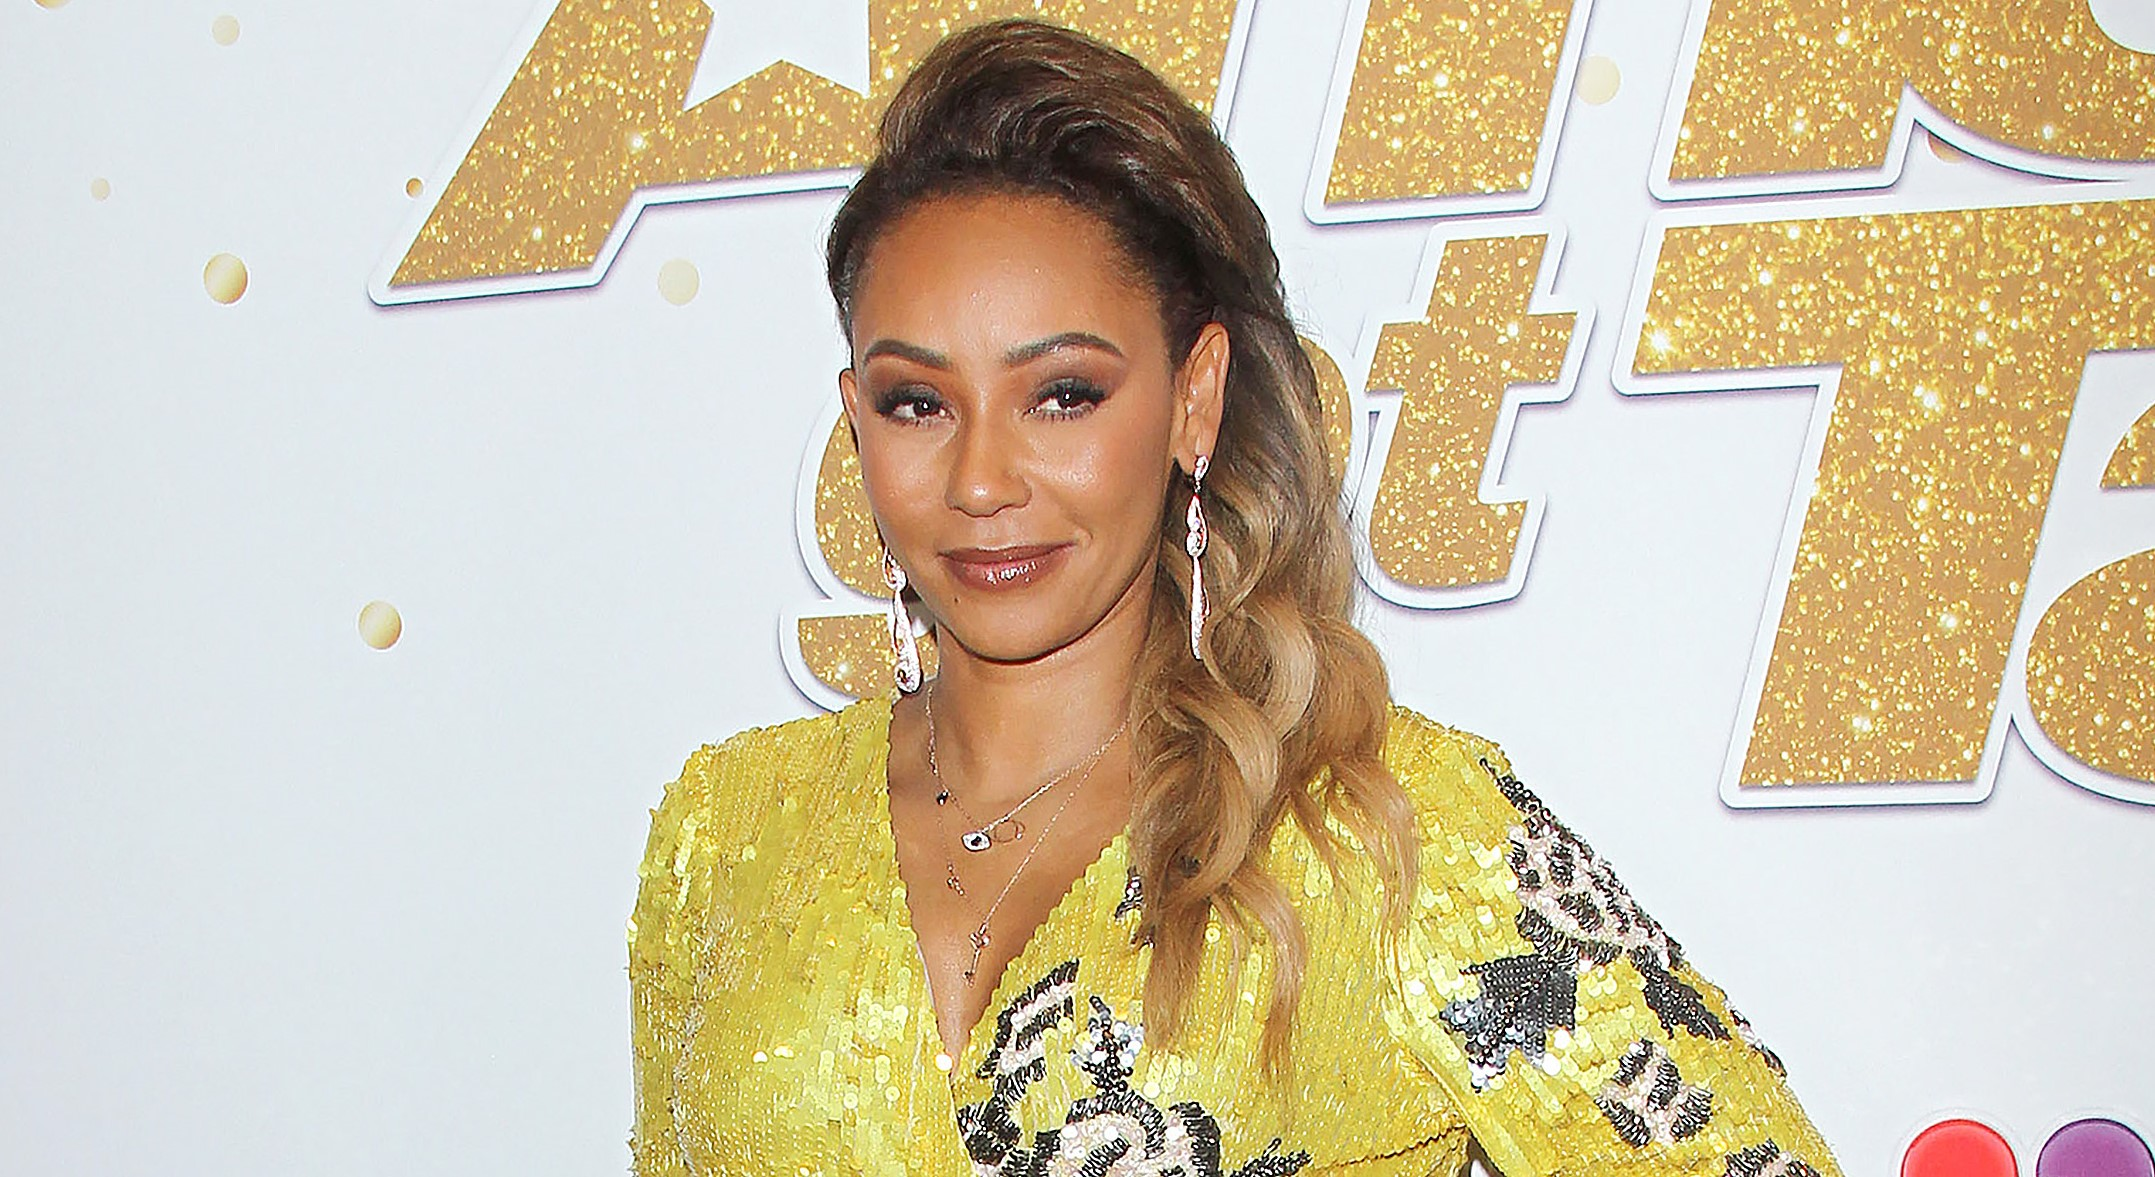 Mel B loses vision in eye, hospitalised